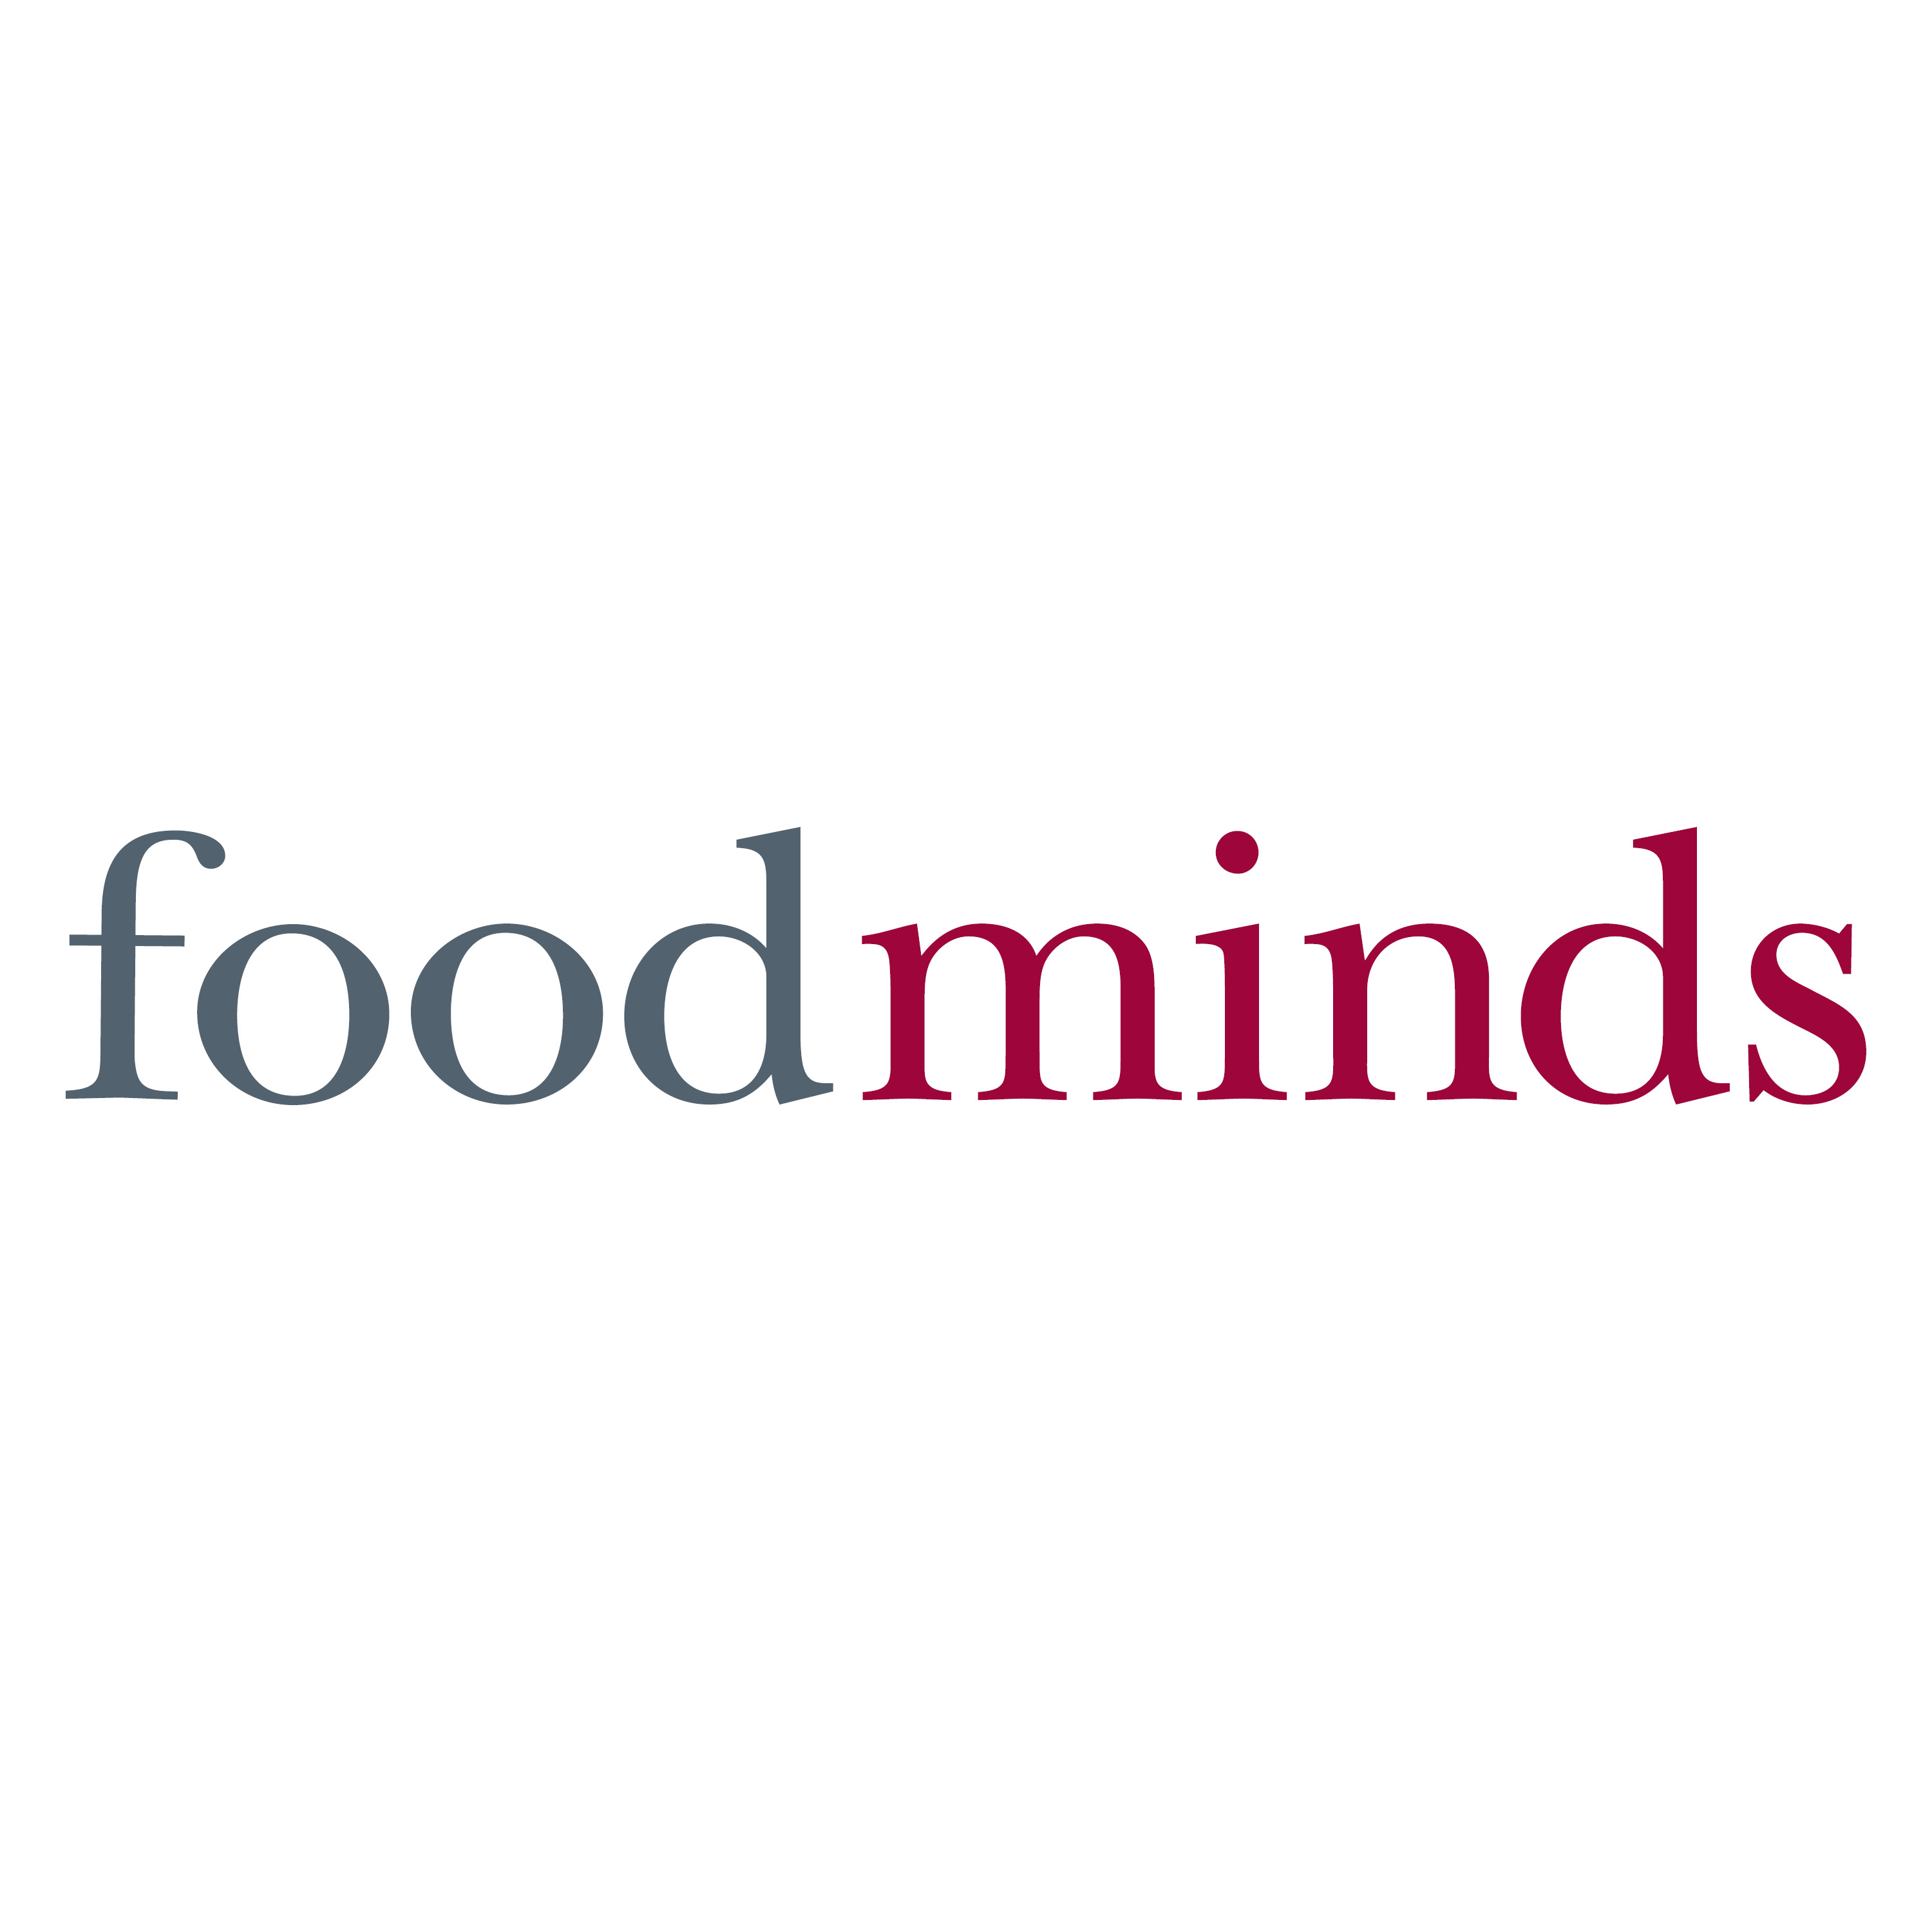 Foodminds